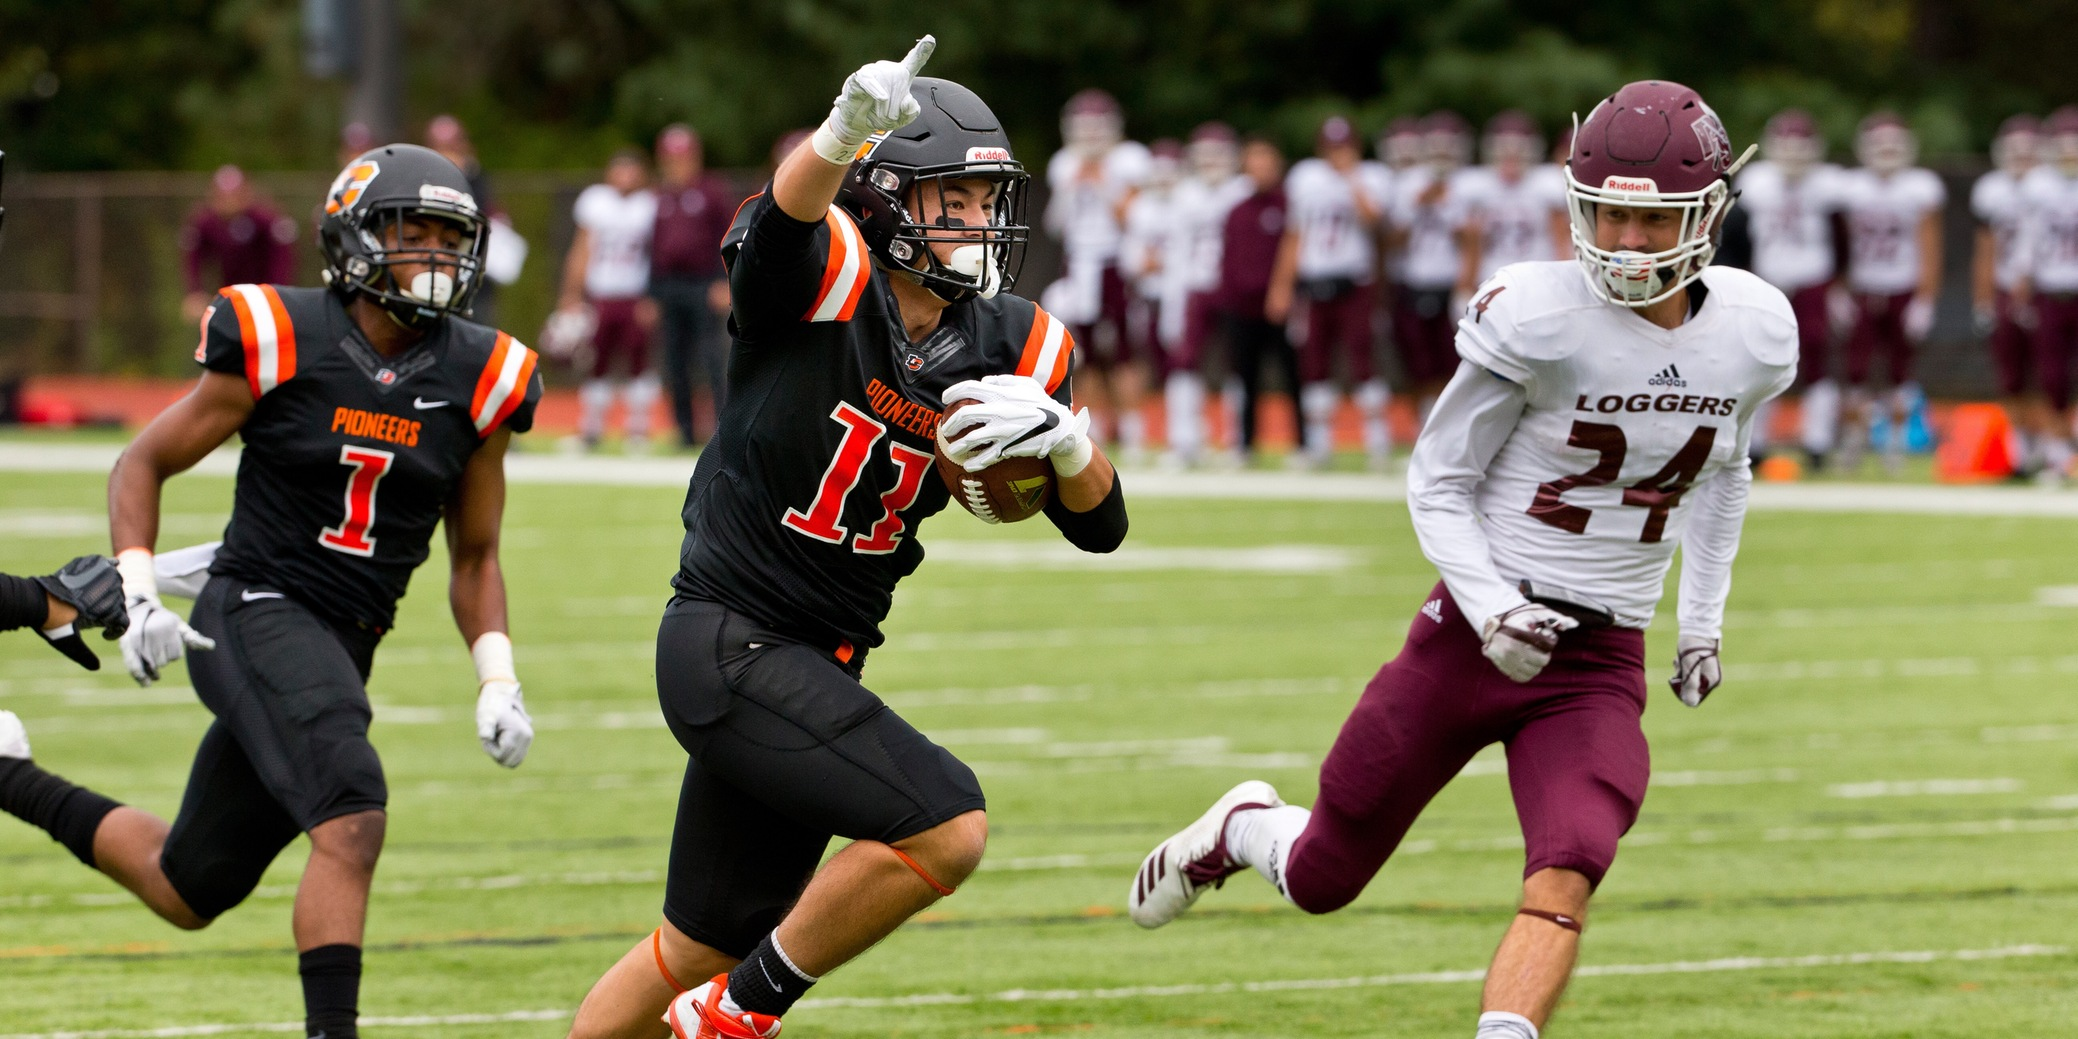 Hosoda breaks single-game receptions record in Homecoming defeat